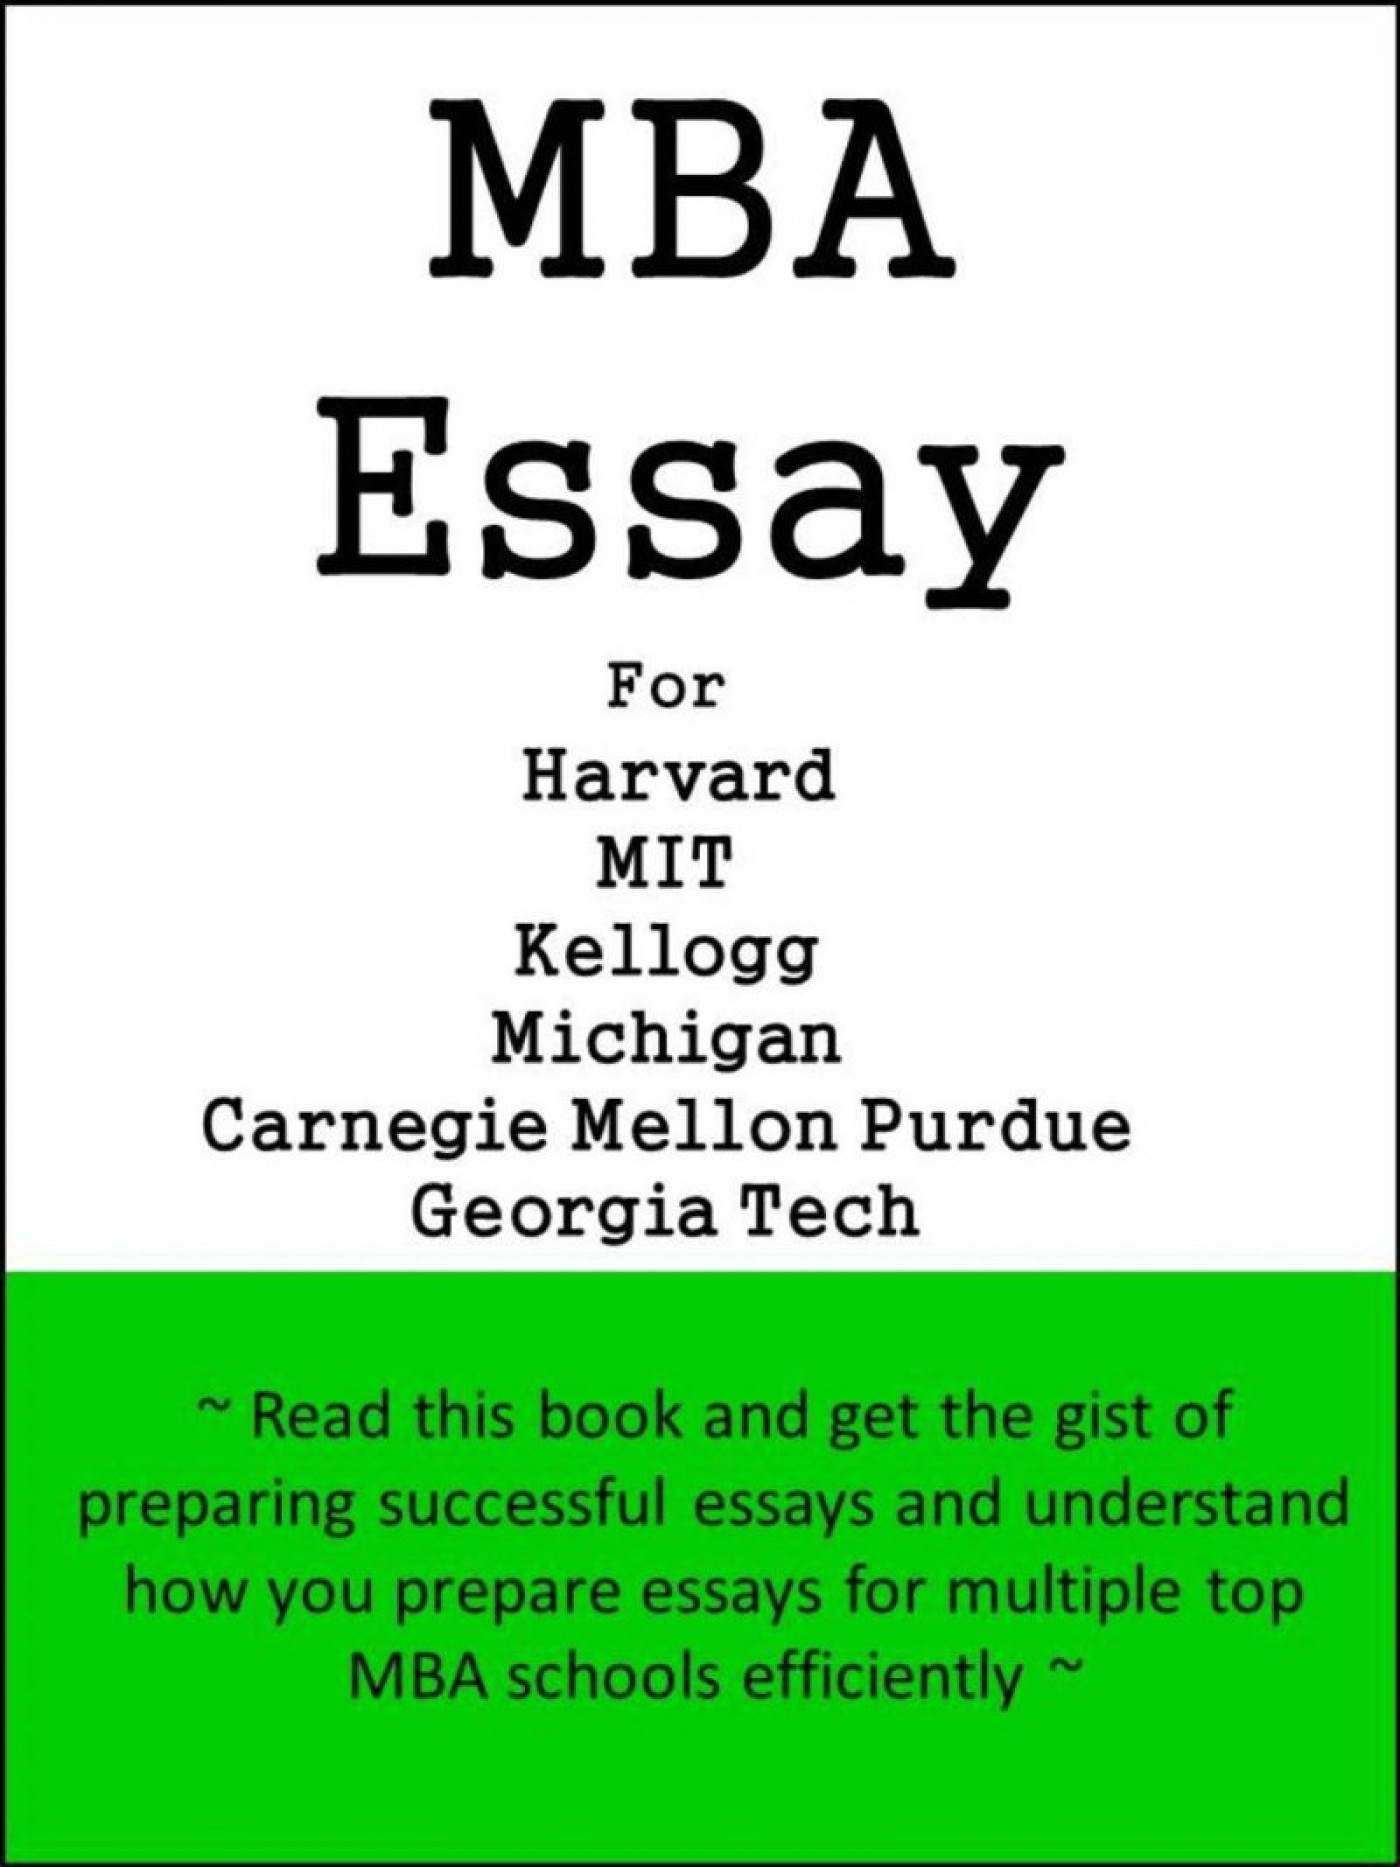 001 Essay Example Carnegie Mellon Kellogg Mba Examples Poemsrom Co For Harvard Mit Michigan Purdue Georgia Tech 205 Striking Sat Requirement Questions 1400